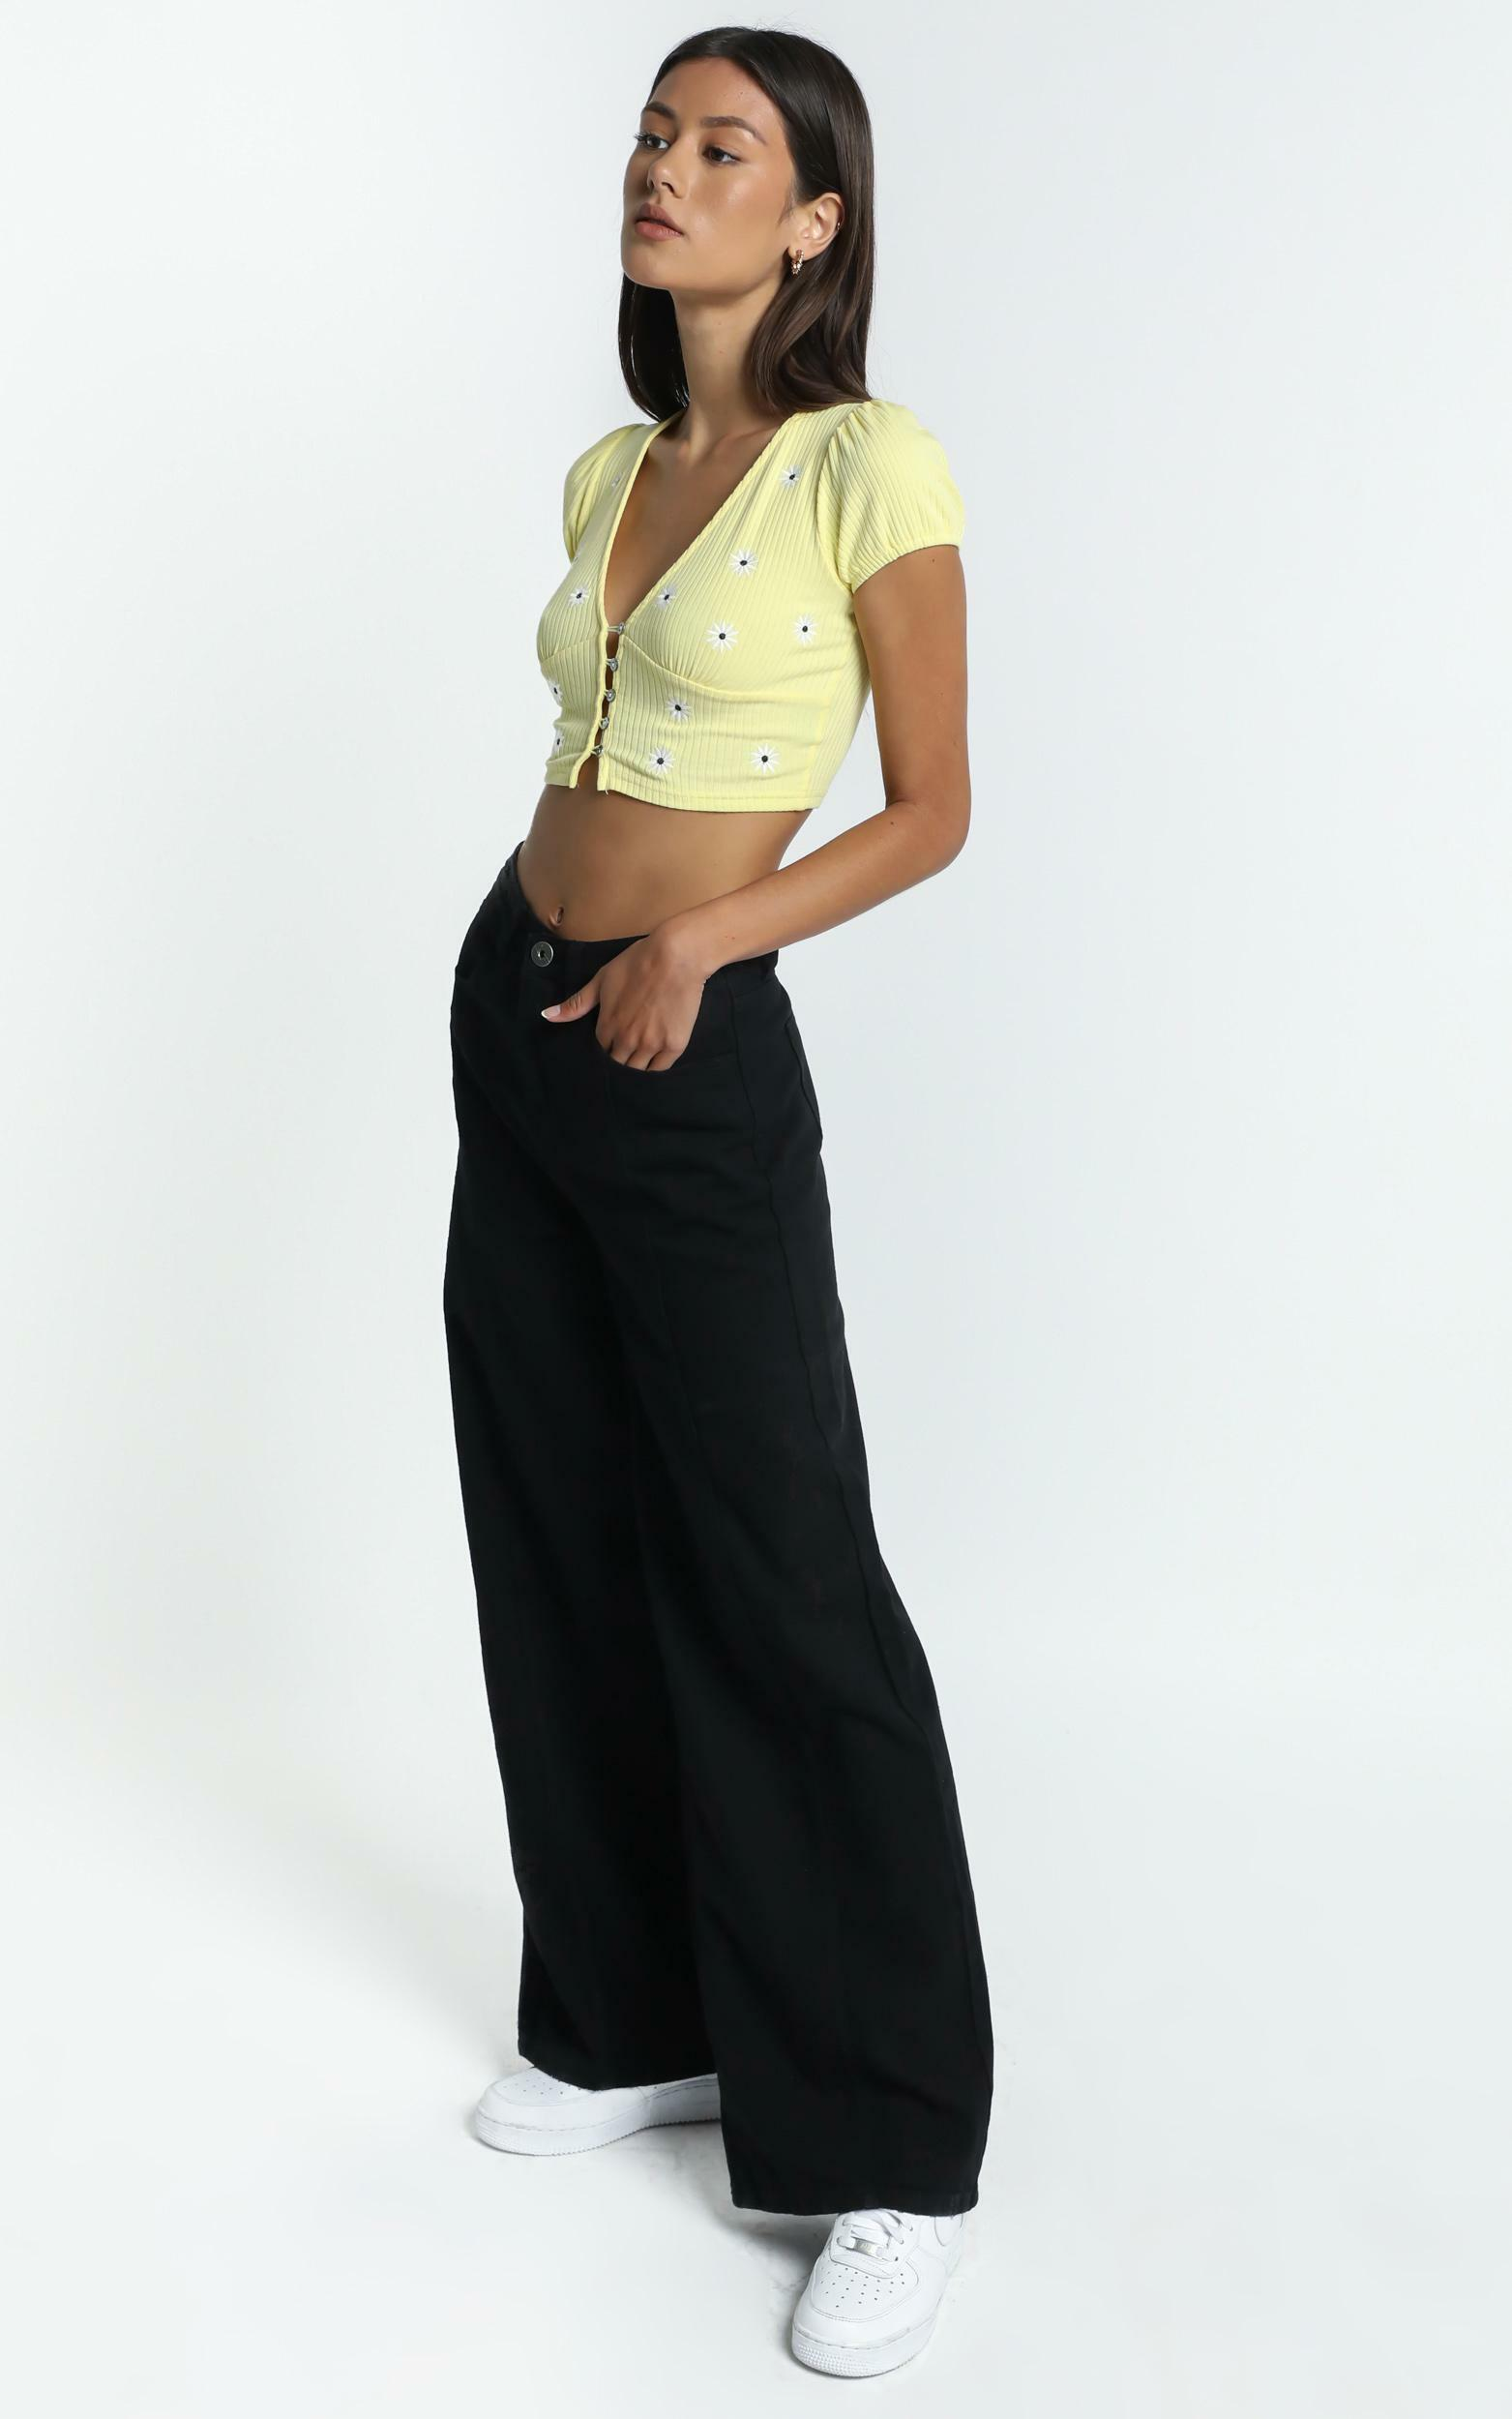 Cadence Top in Yellow - 8 (S), Yellow, hi-res image number null